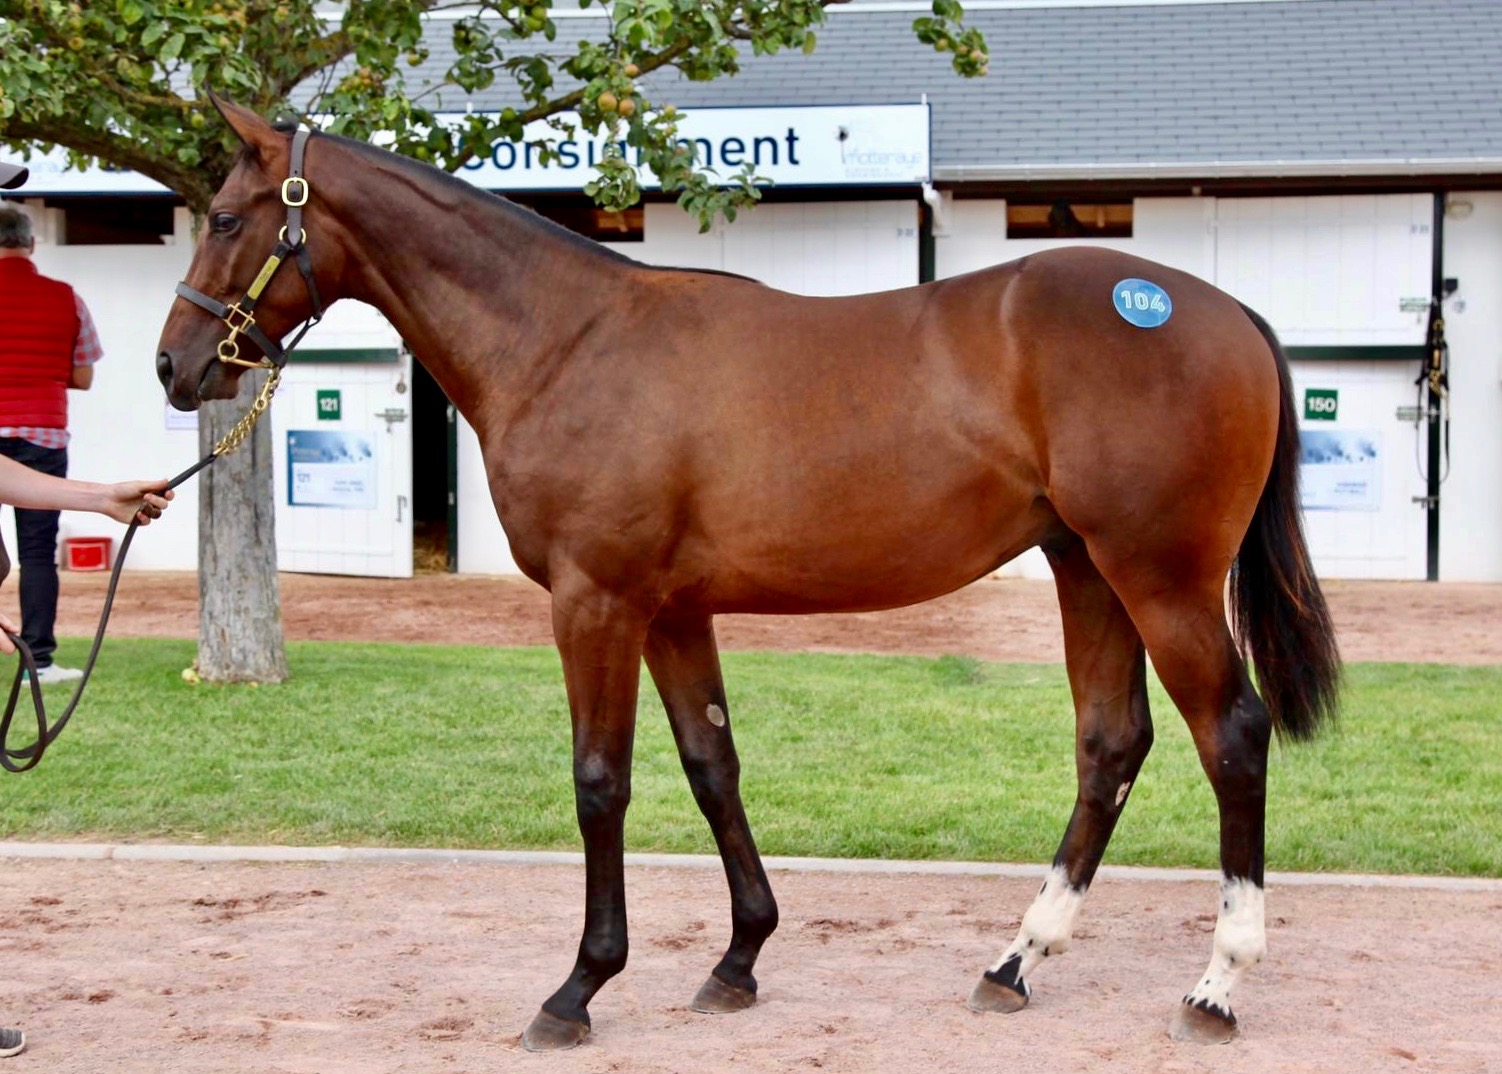 Lot 104 Frankel x Kenzadargent  Sold to Amanda Skiffington for €500,000 at the Arqana August Yearling Sale 2019